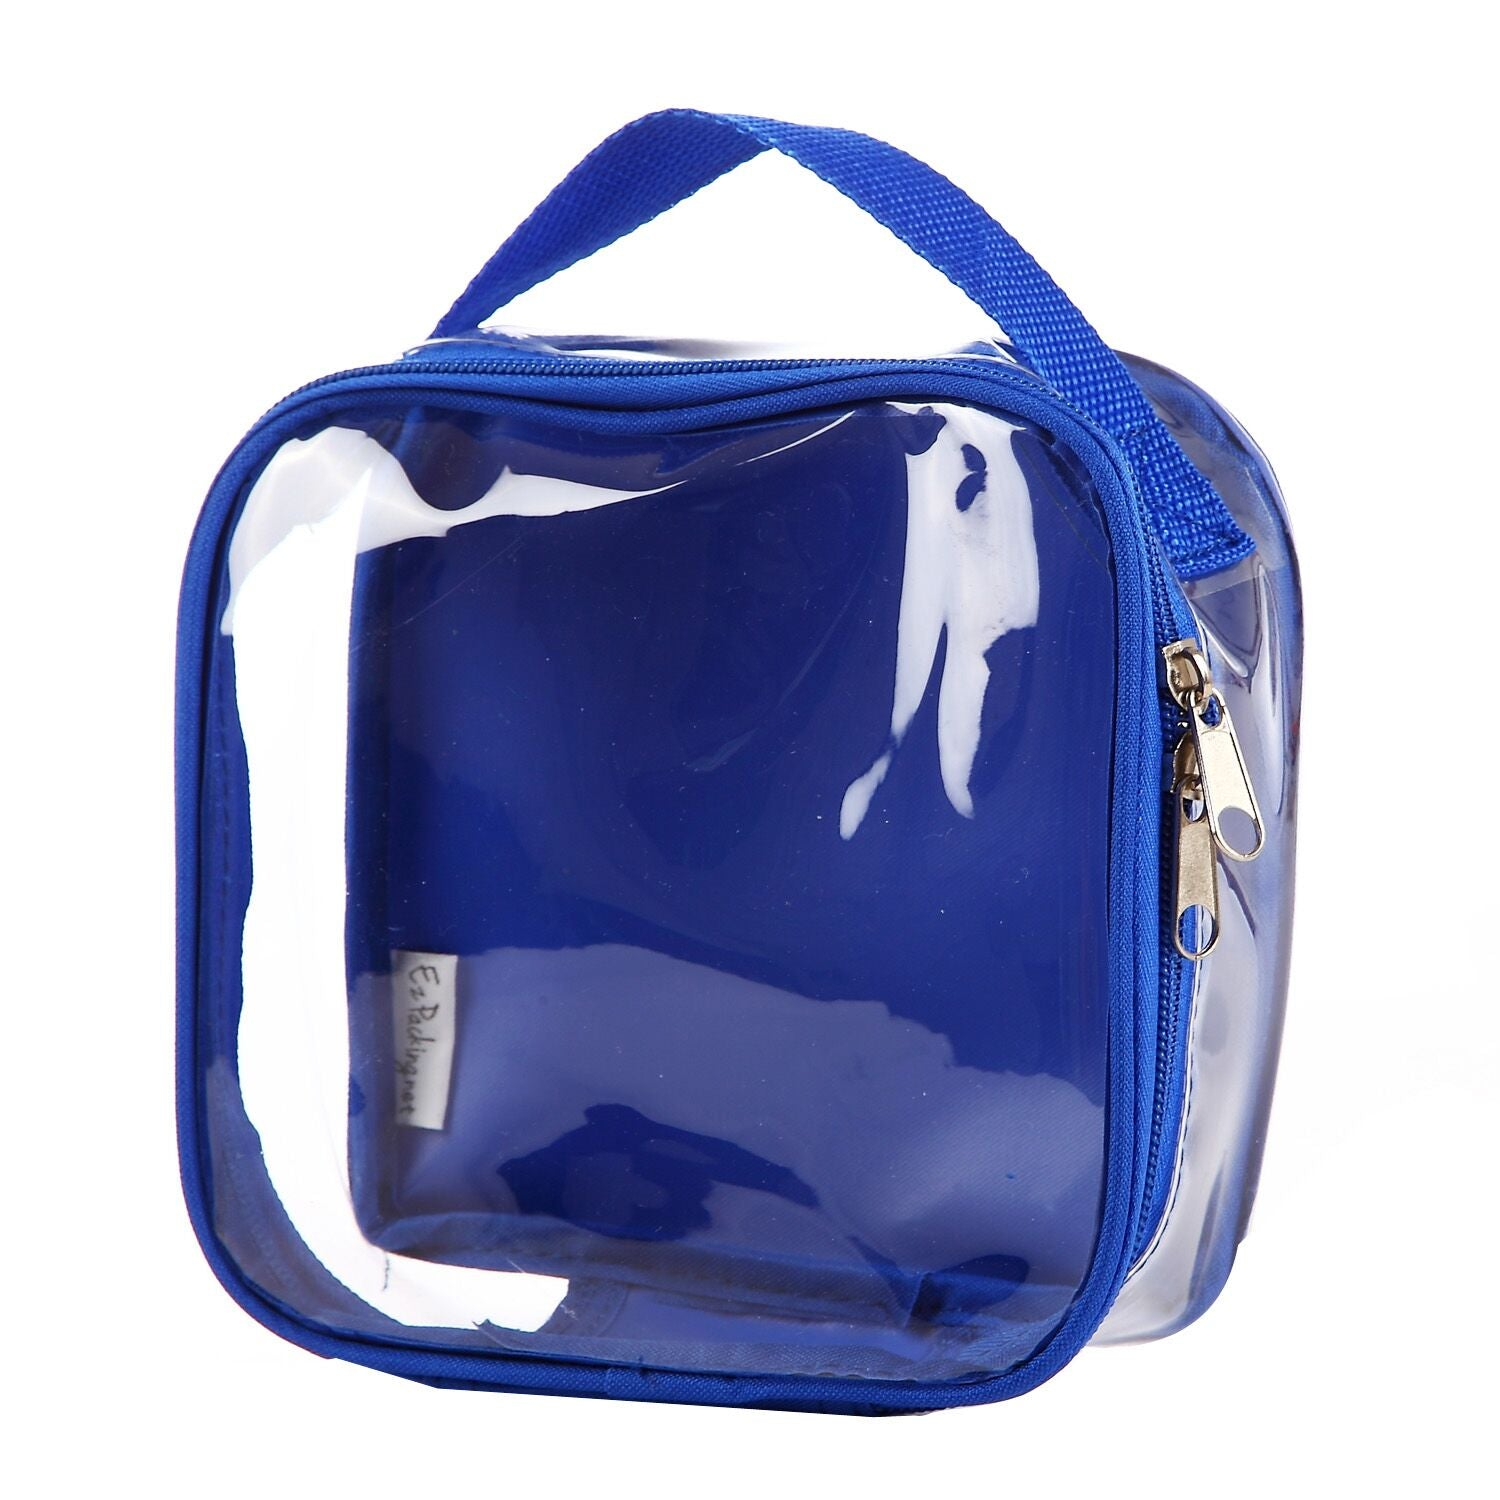 Extra small royal blue travel cube